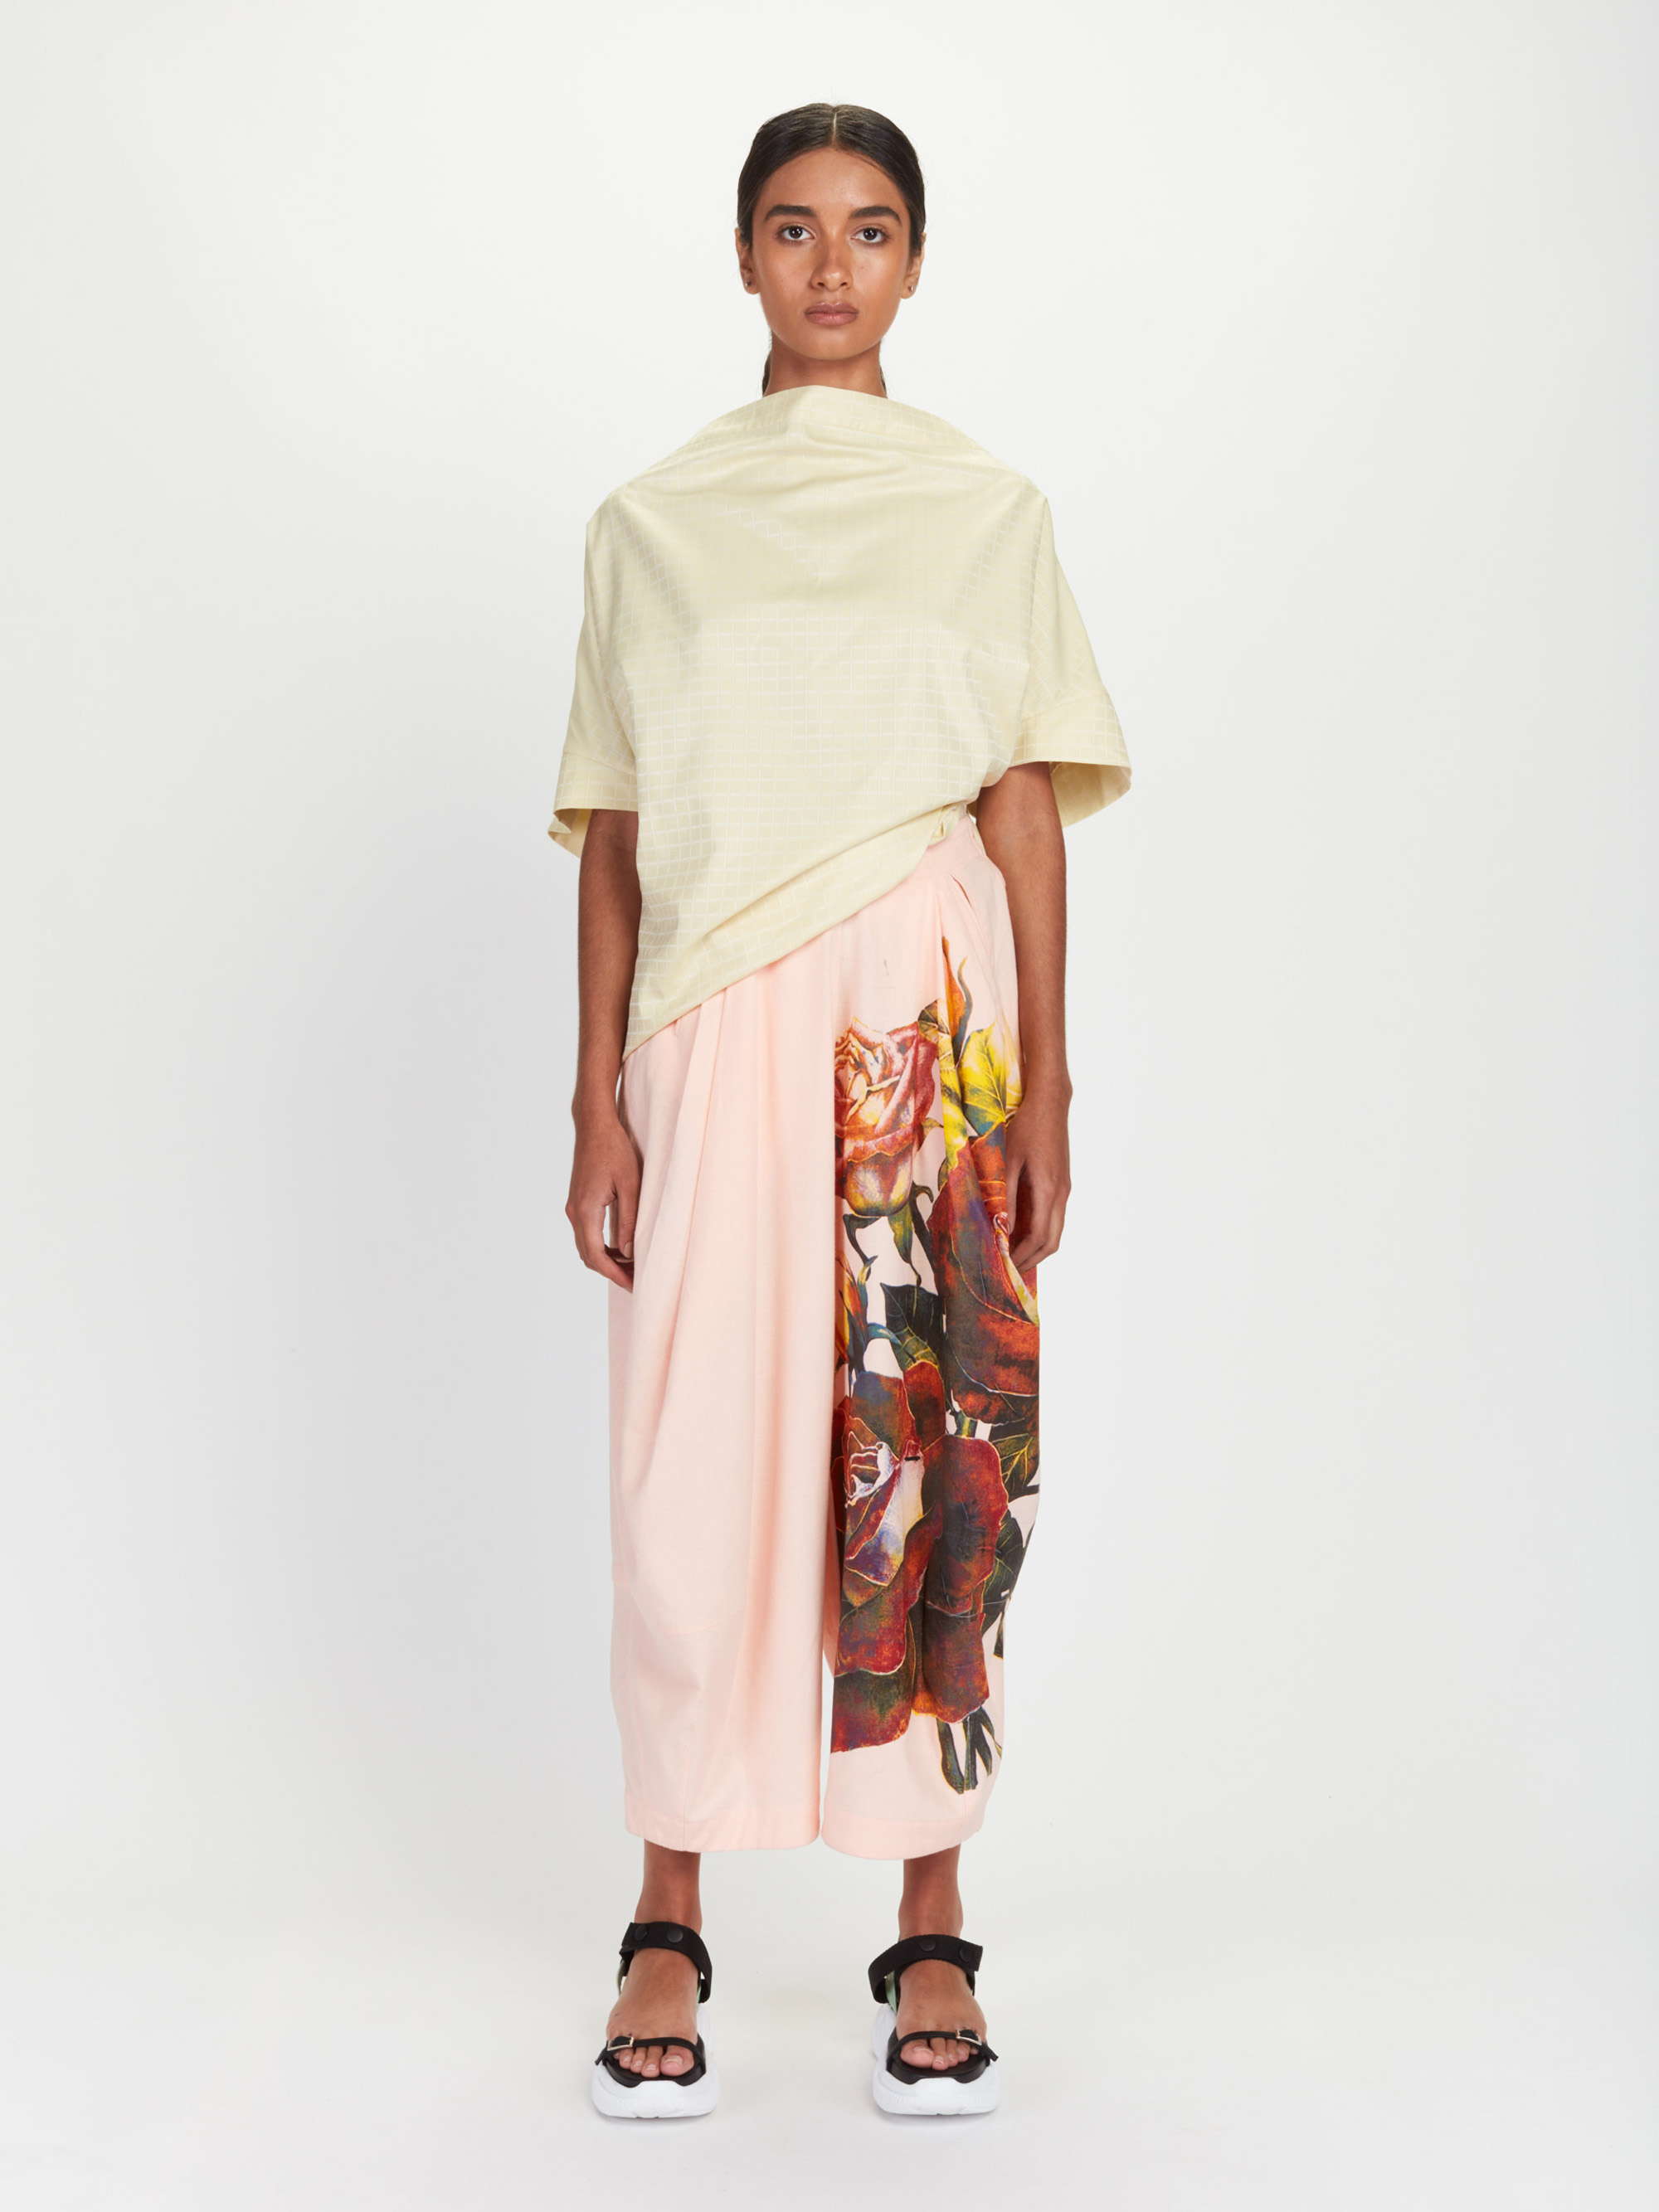 jt_zappa-printed-pant_29-26-2018__picture-1275